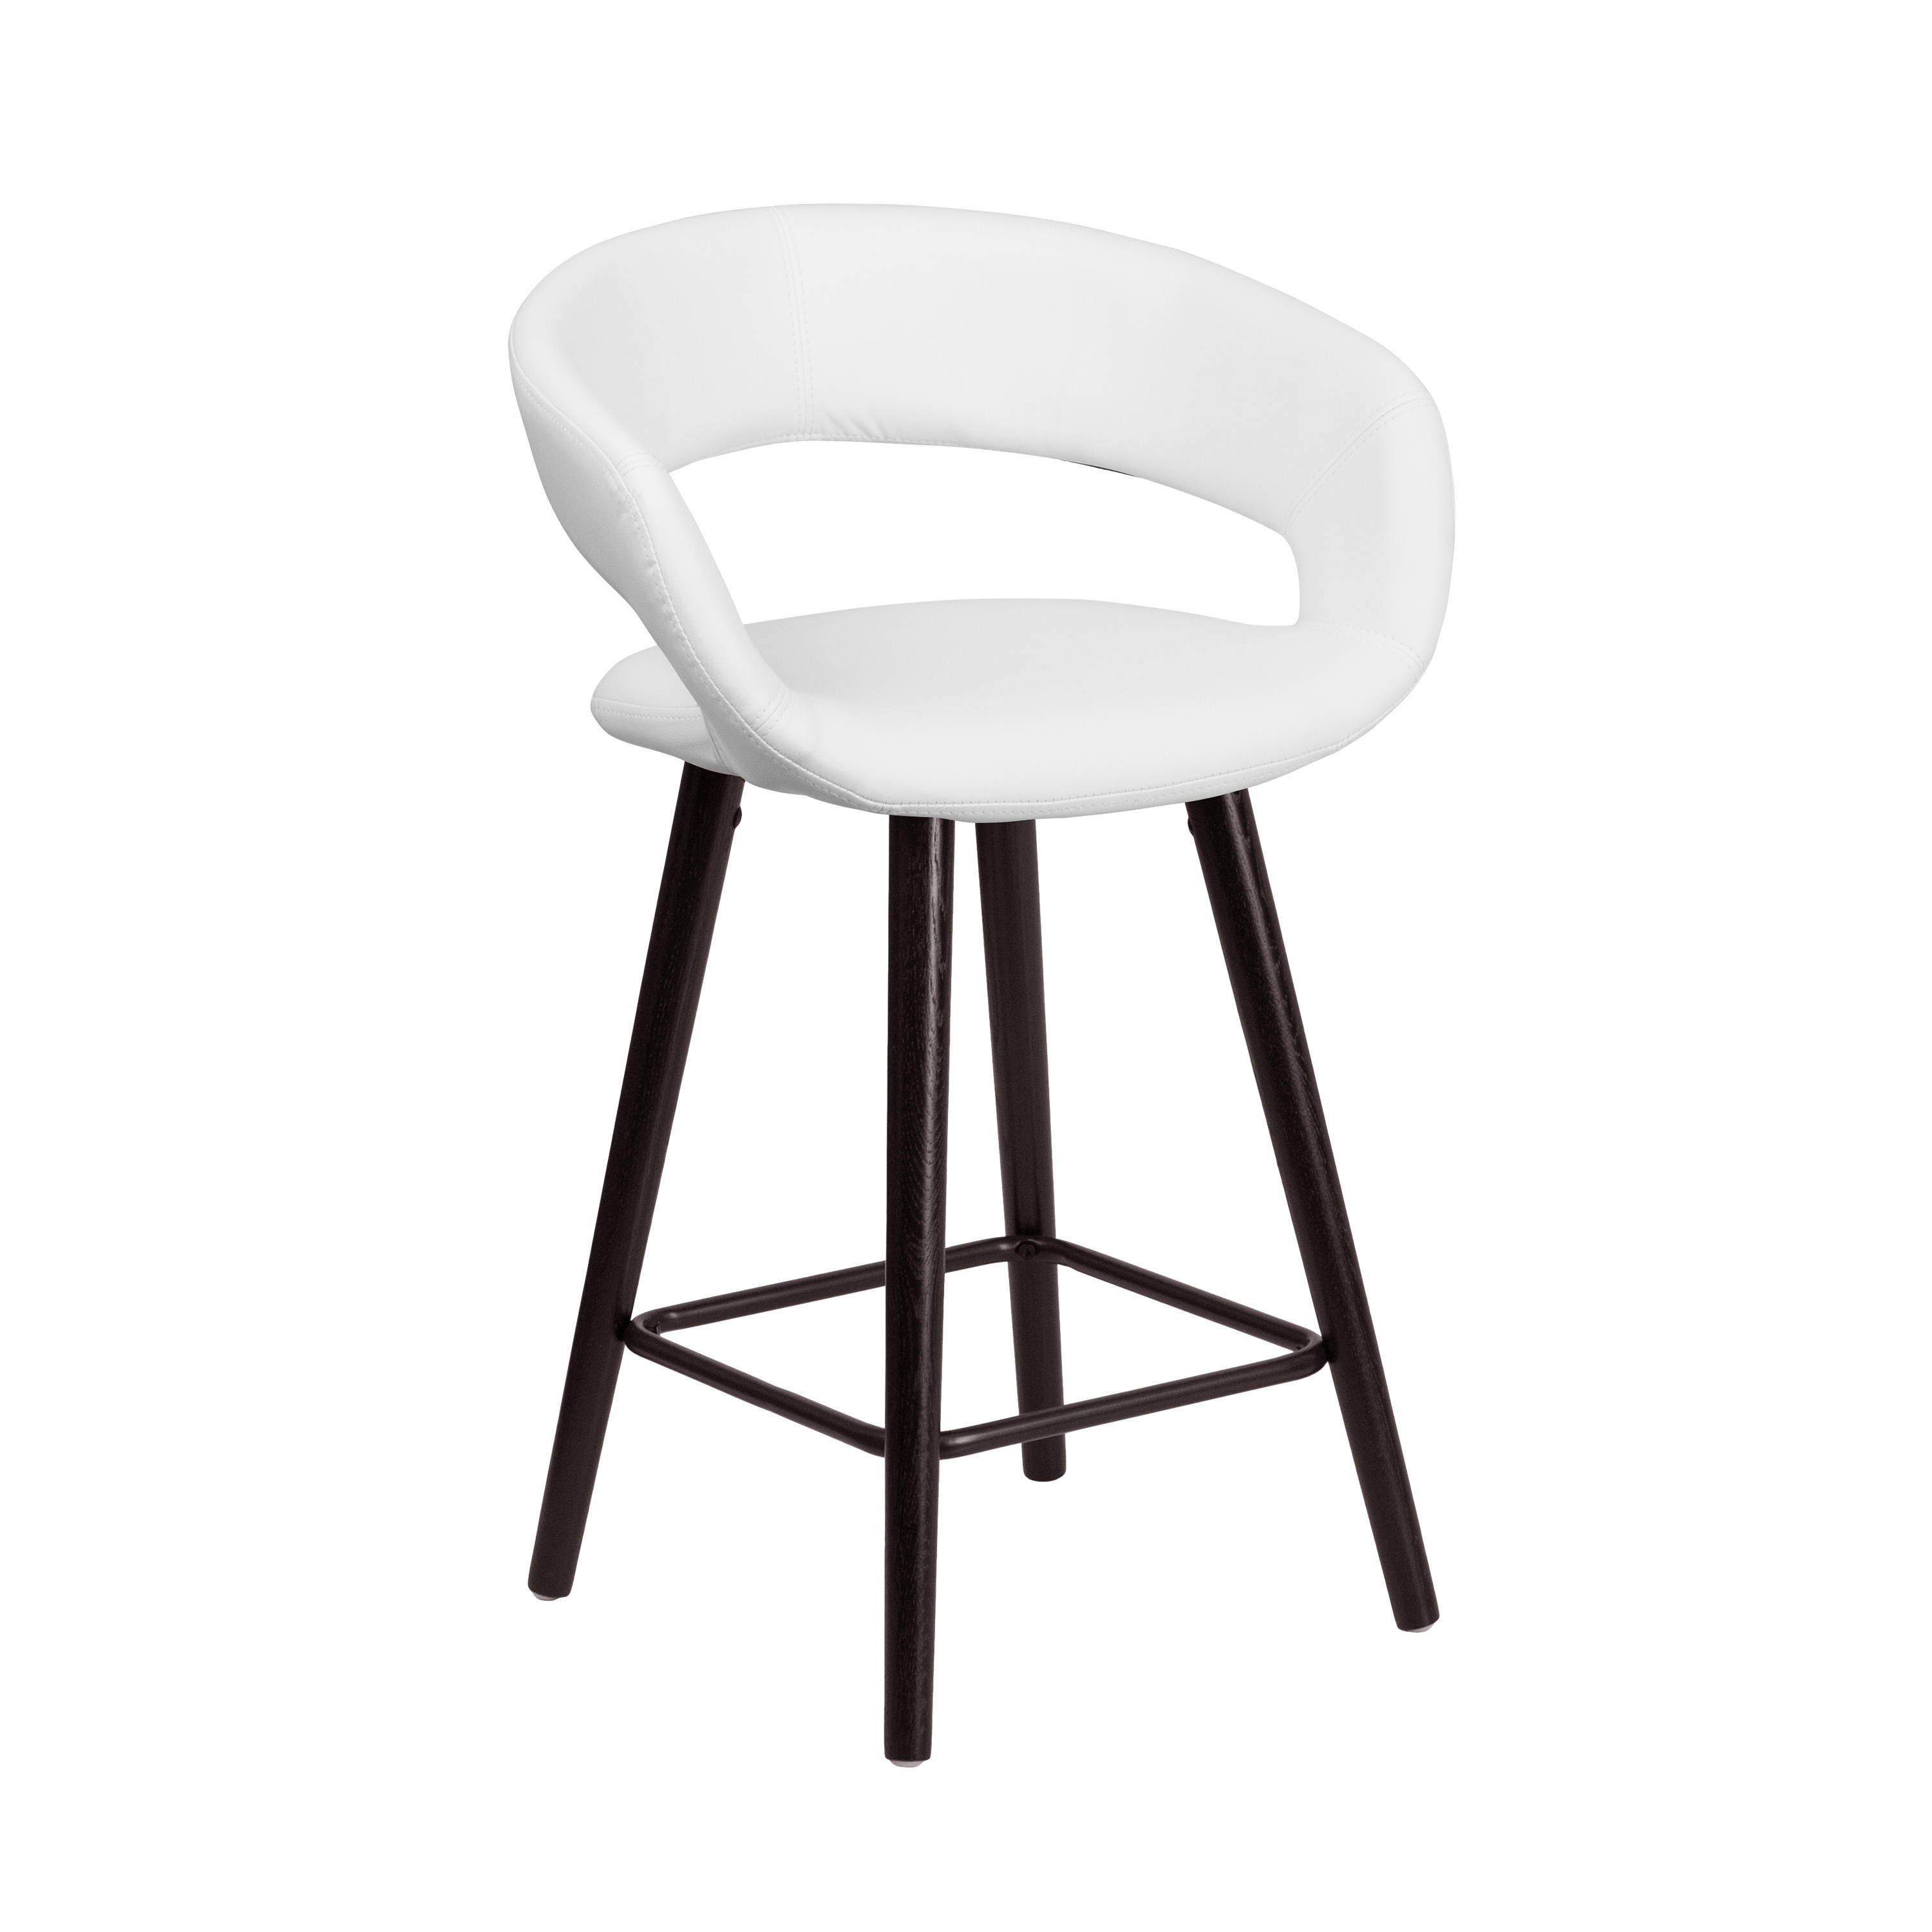 24 Inch High Counter Height Stool